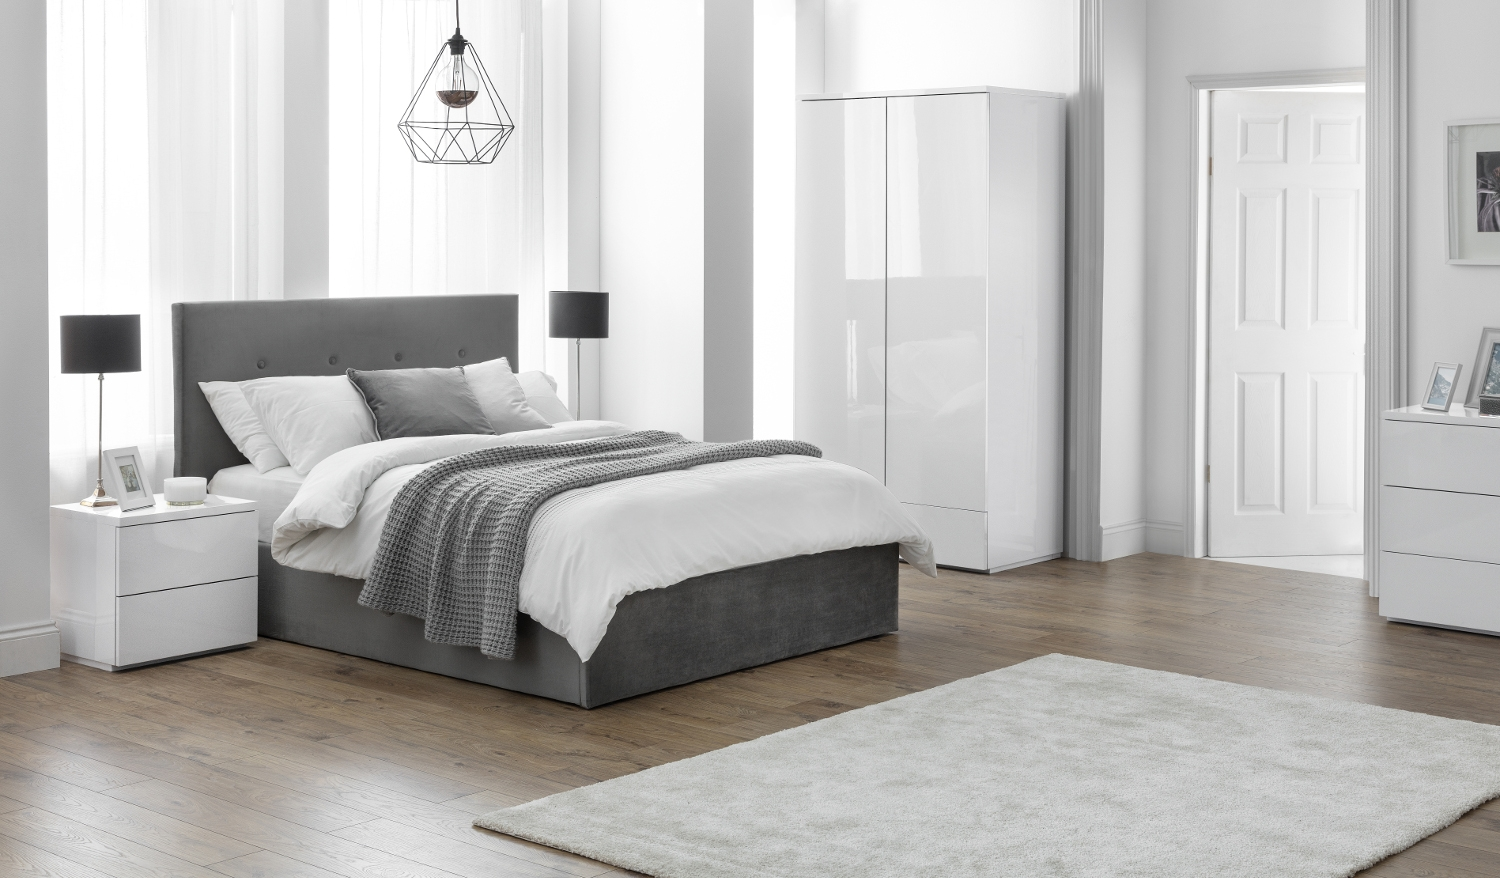 Monaco White Wooden Bedroom Furniture Collection